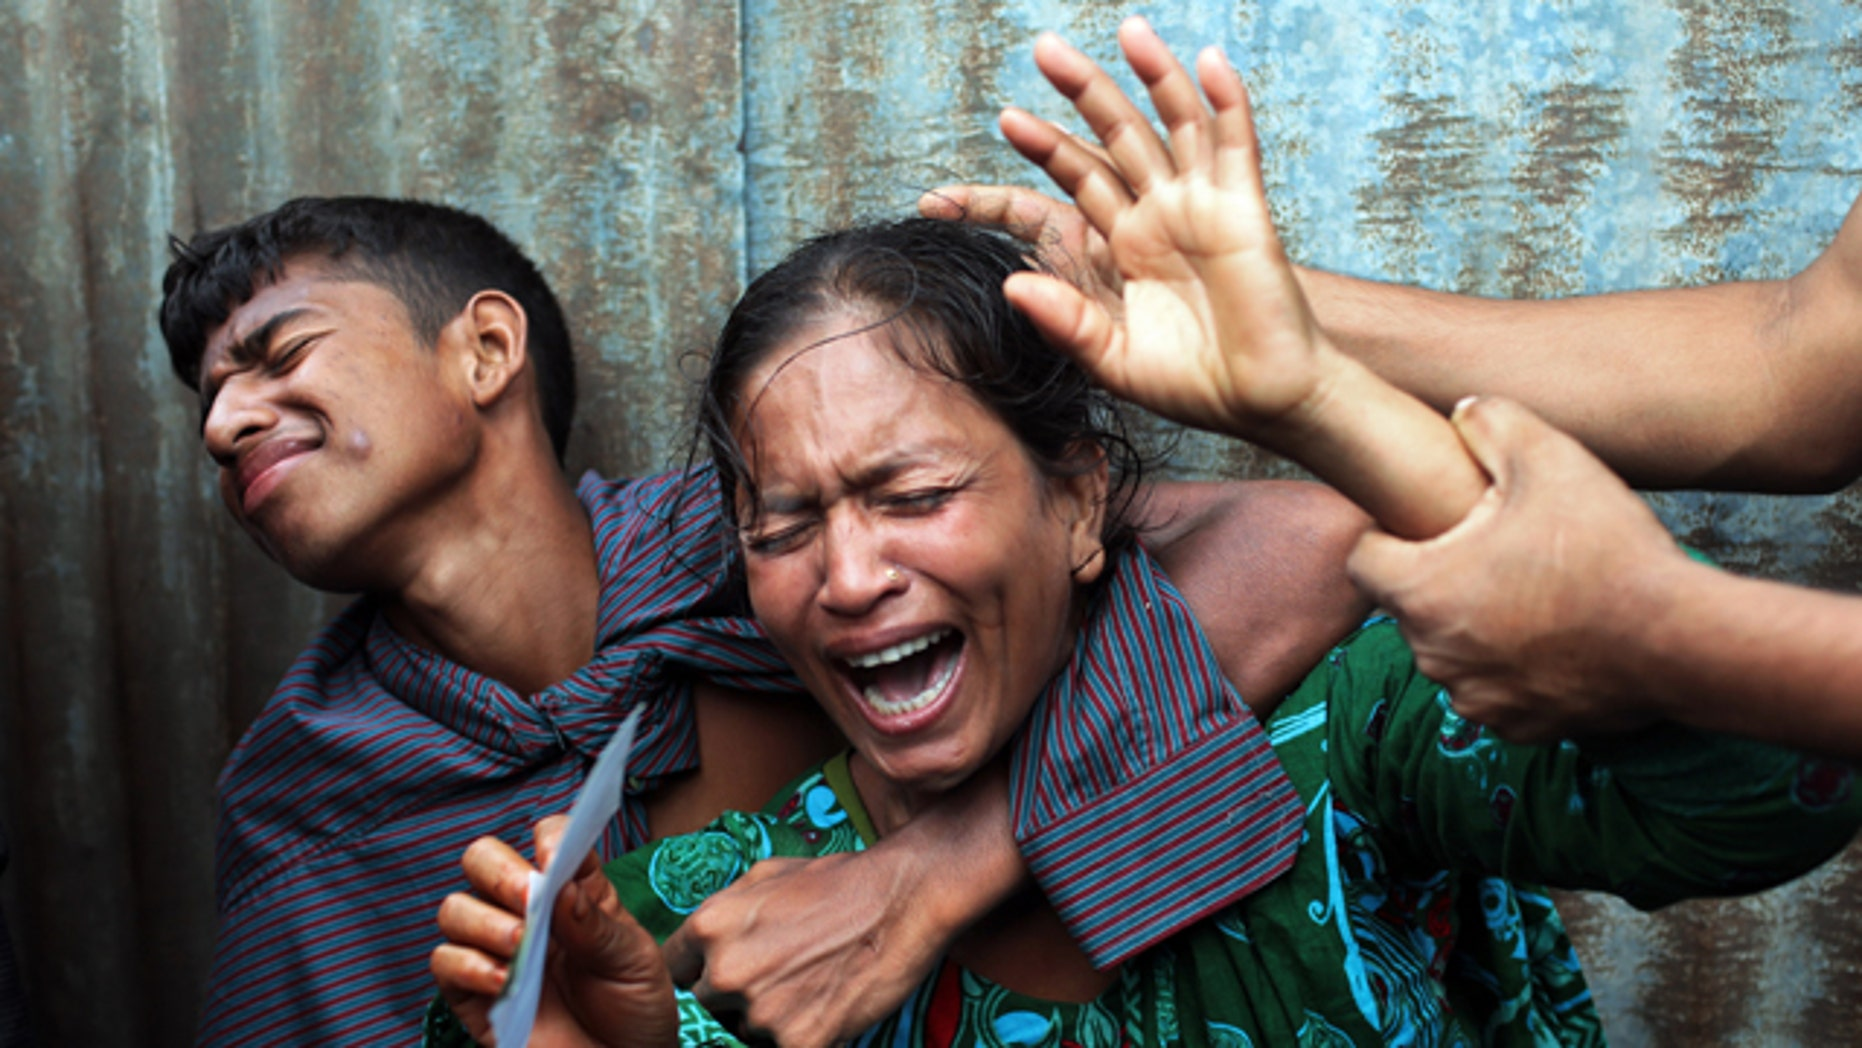 August 4, 2014: Bangladeshi woman Munni, whose daughters are missing, cries as rescuers search the River Padma after a passenger ferry capsized in Munshiganj district. (AP Photo/ A.M. Ahad)